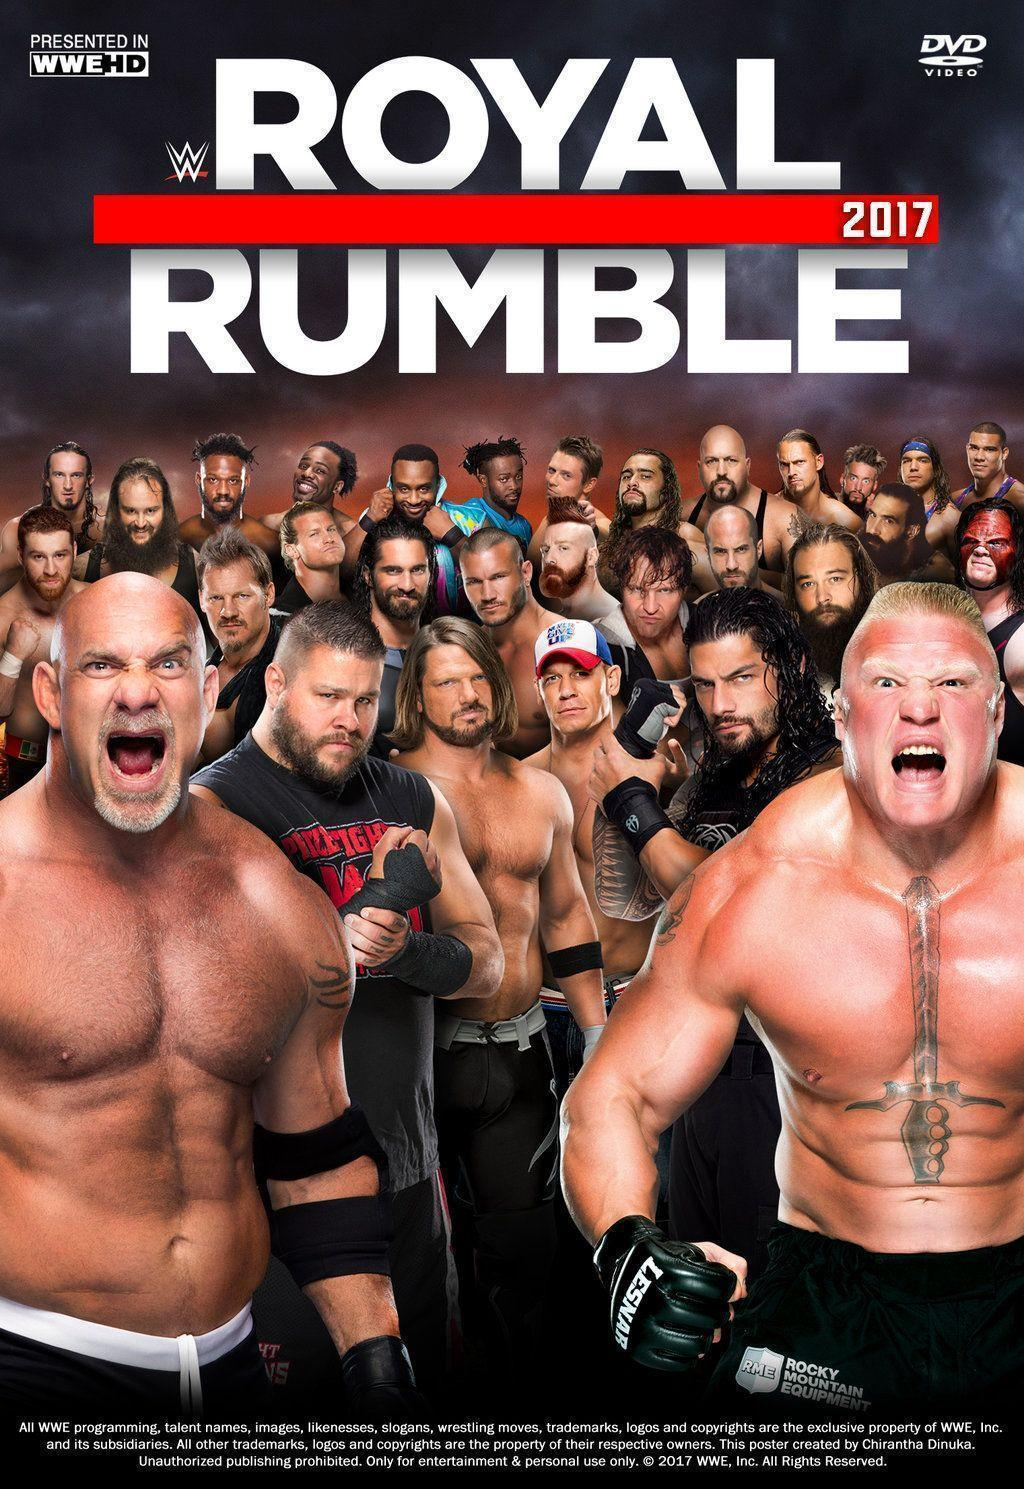 Royal Rumble 2017 Poster by Chirantha | WWE | Pinterest | Poster ...